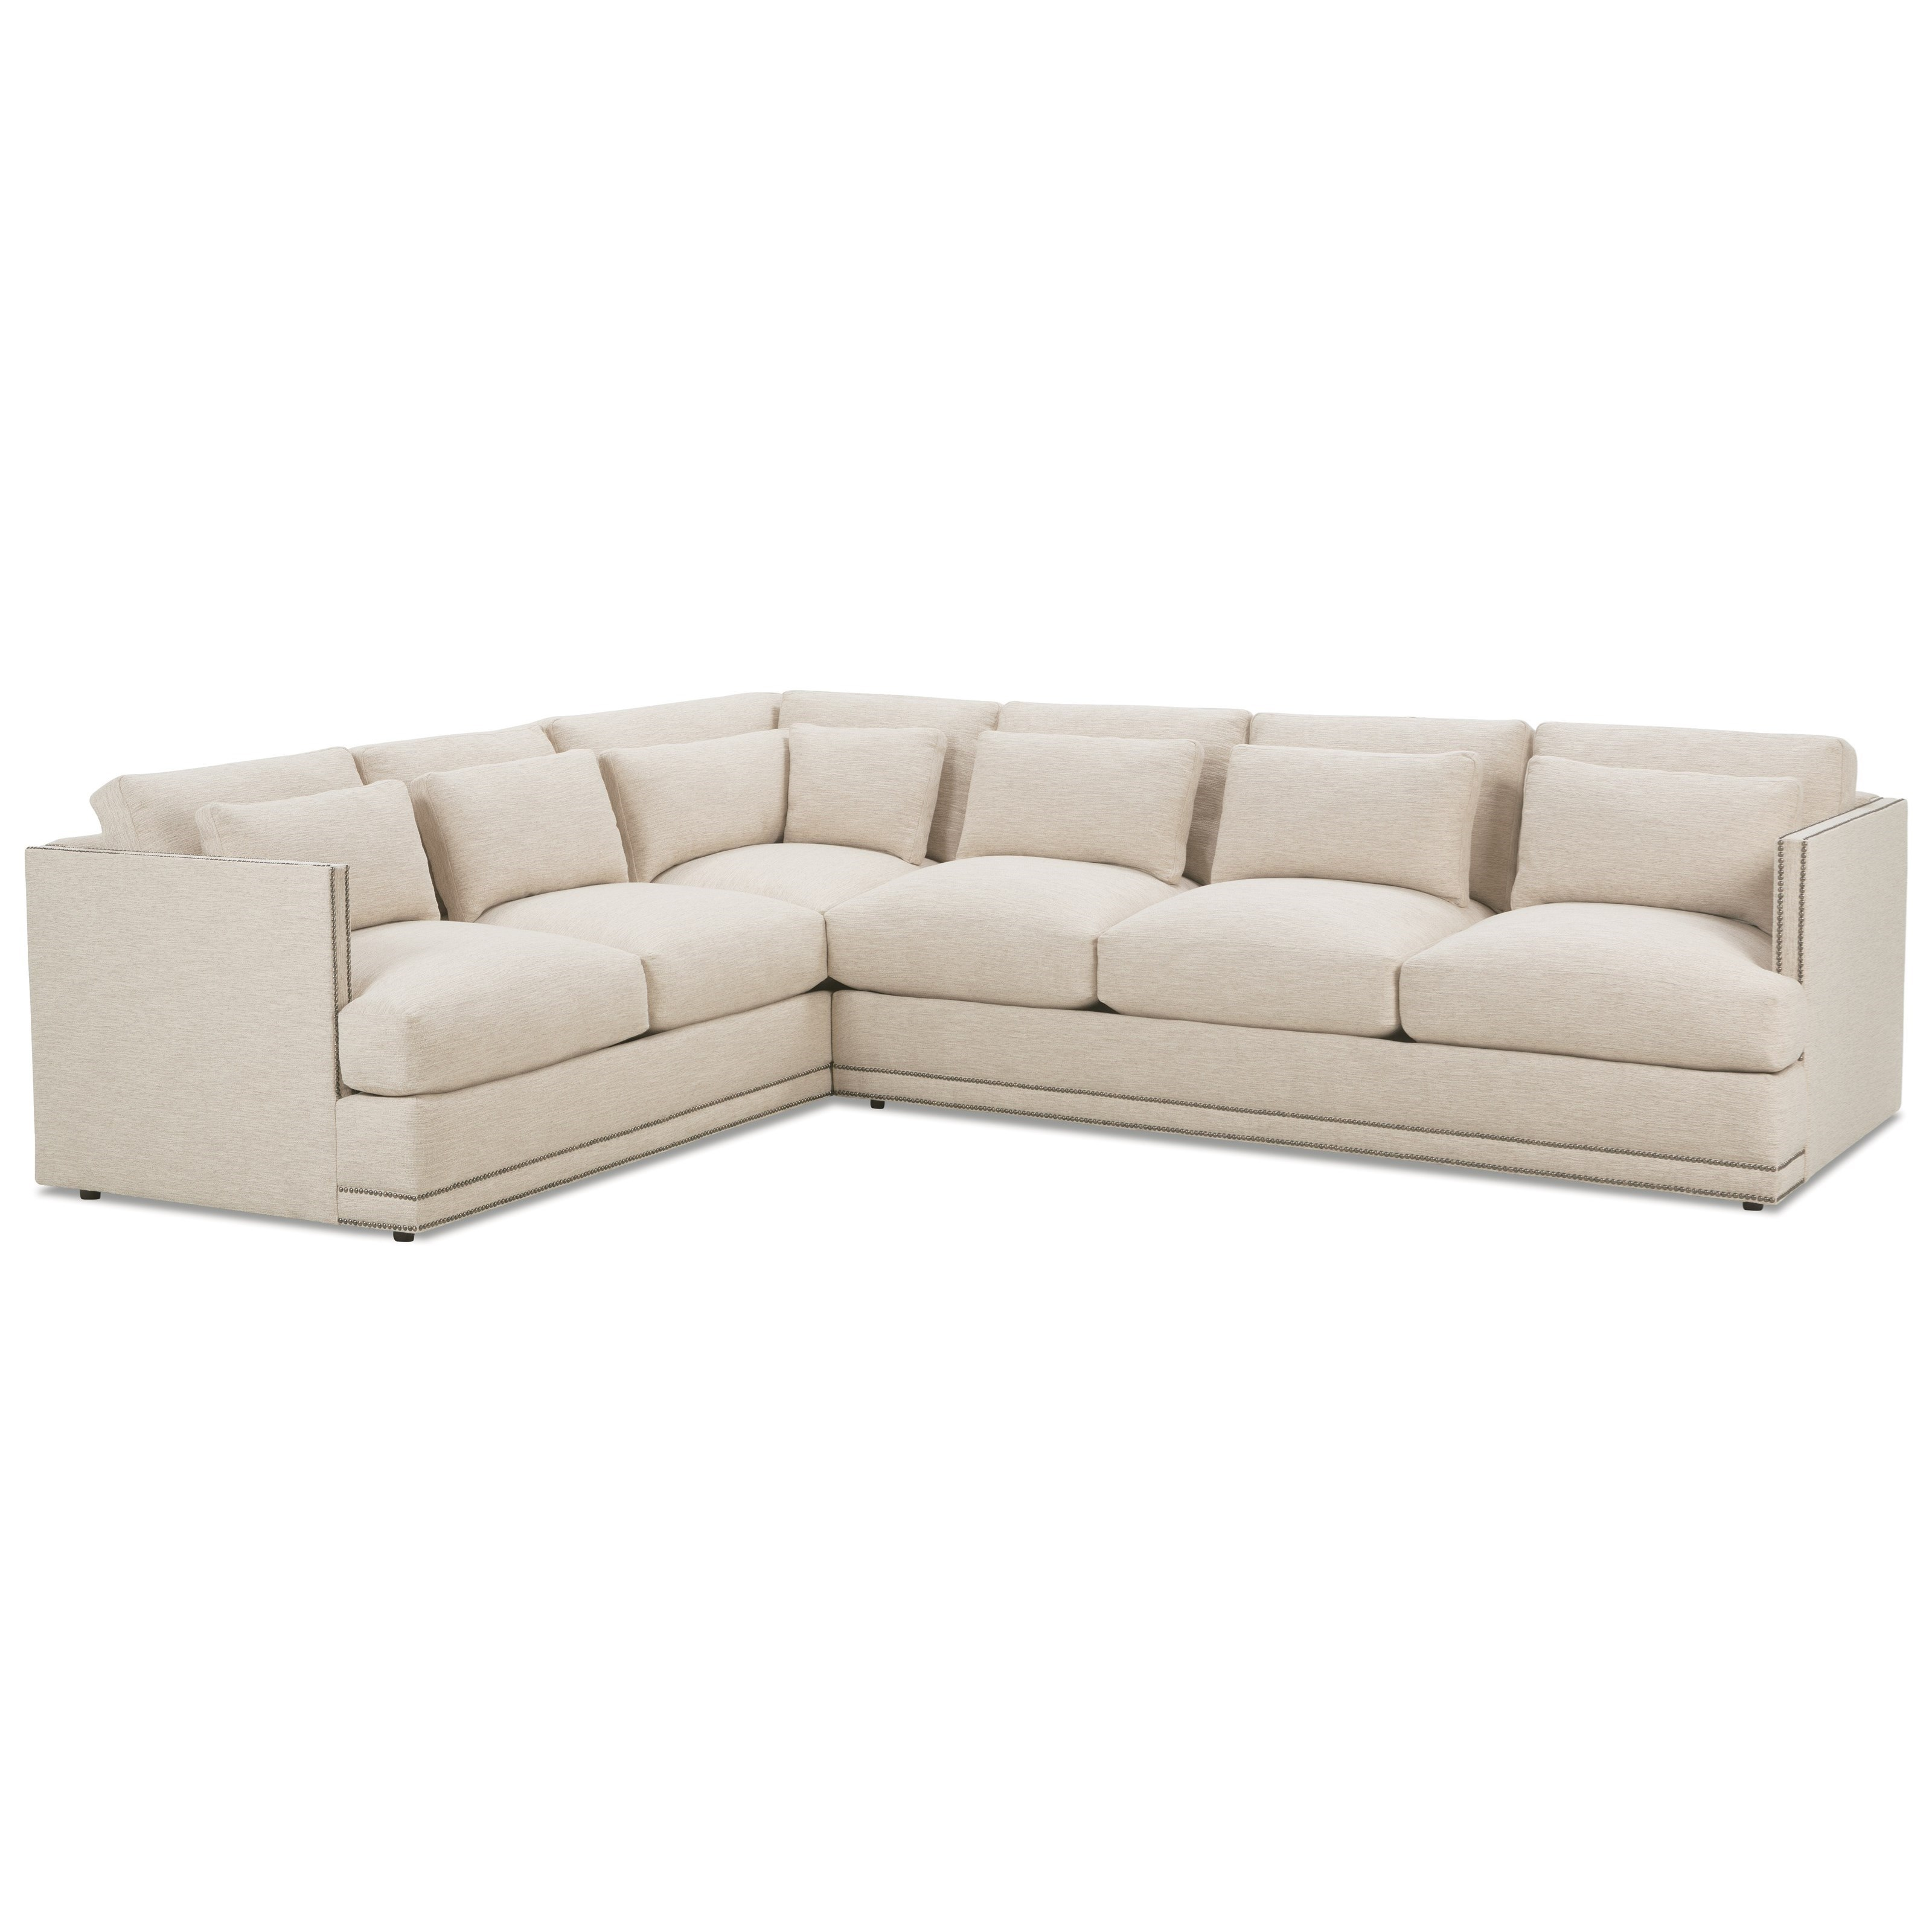 RB by Rowe Oscar Contemporary Sectional Sofa Group - Belfort Furniture - Sectional Sofas  sc 1 st  Belfort Furniture : rowe sectional sofas - Sectionals, Sofas & Couches